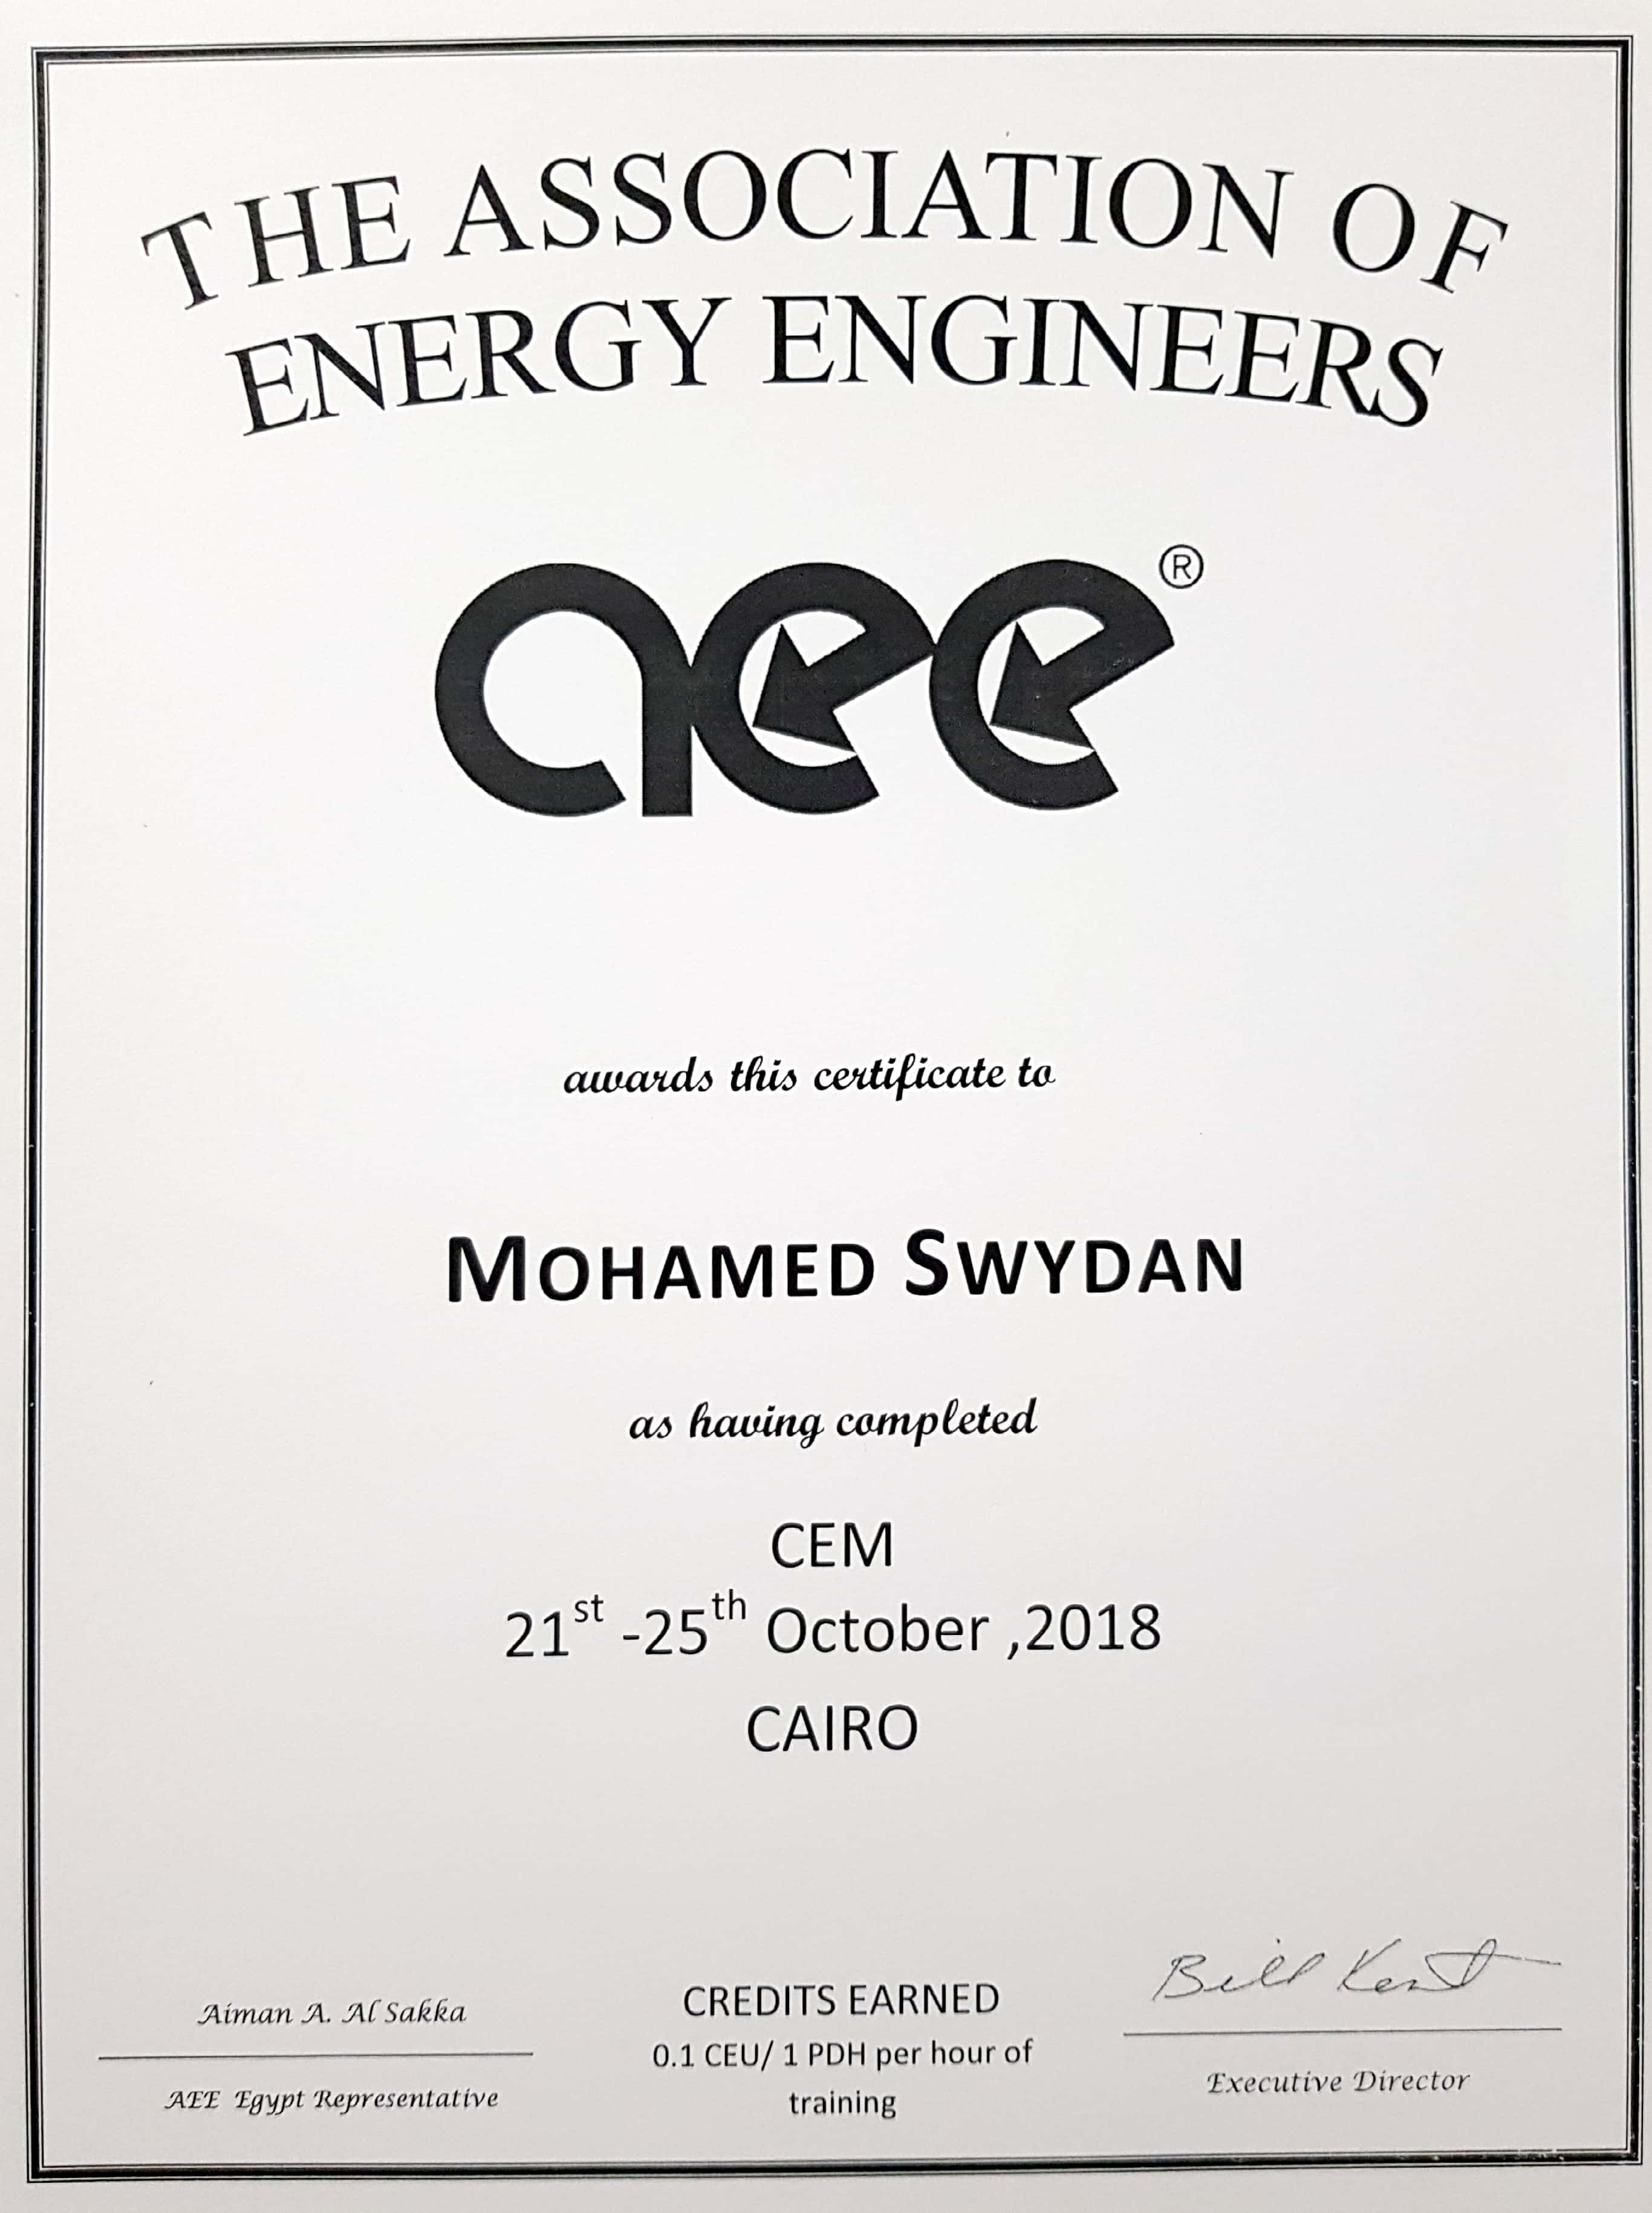 cem course certificate prmg mohamed manager energy pmp certified professional management